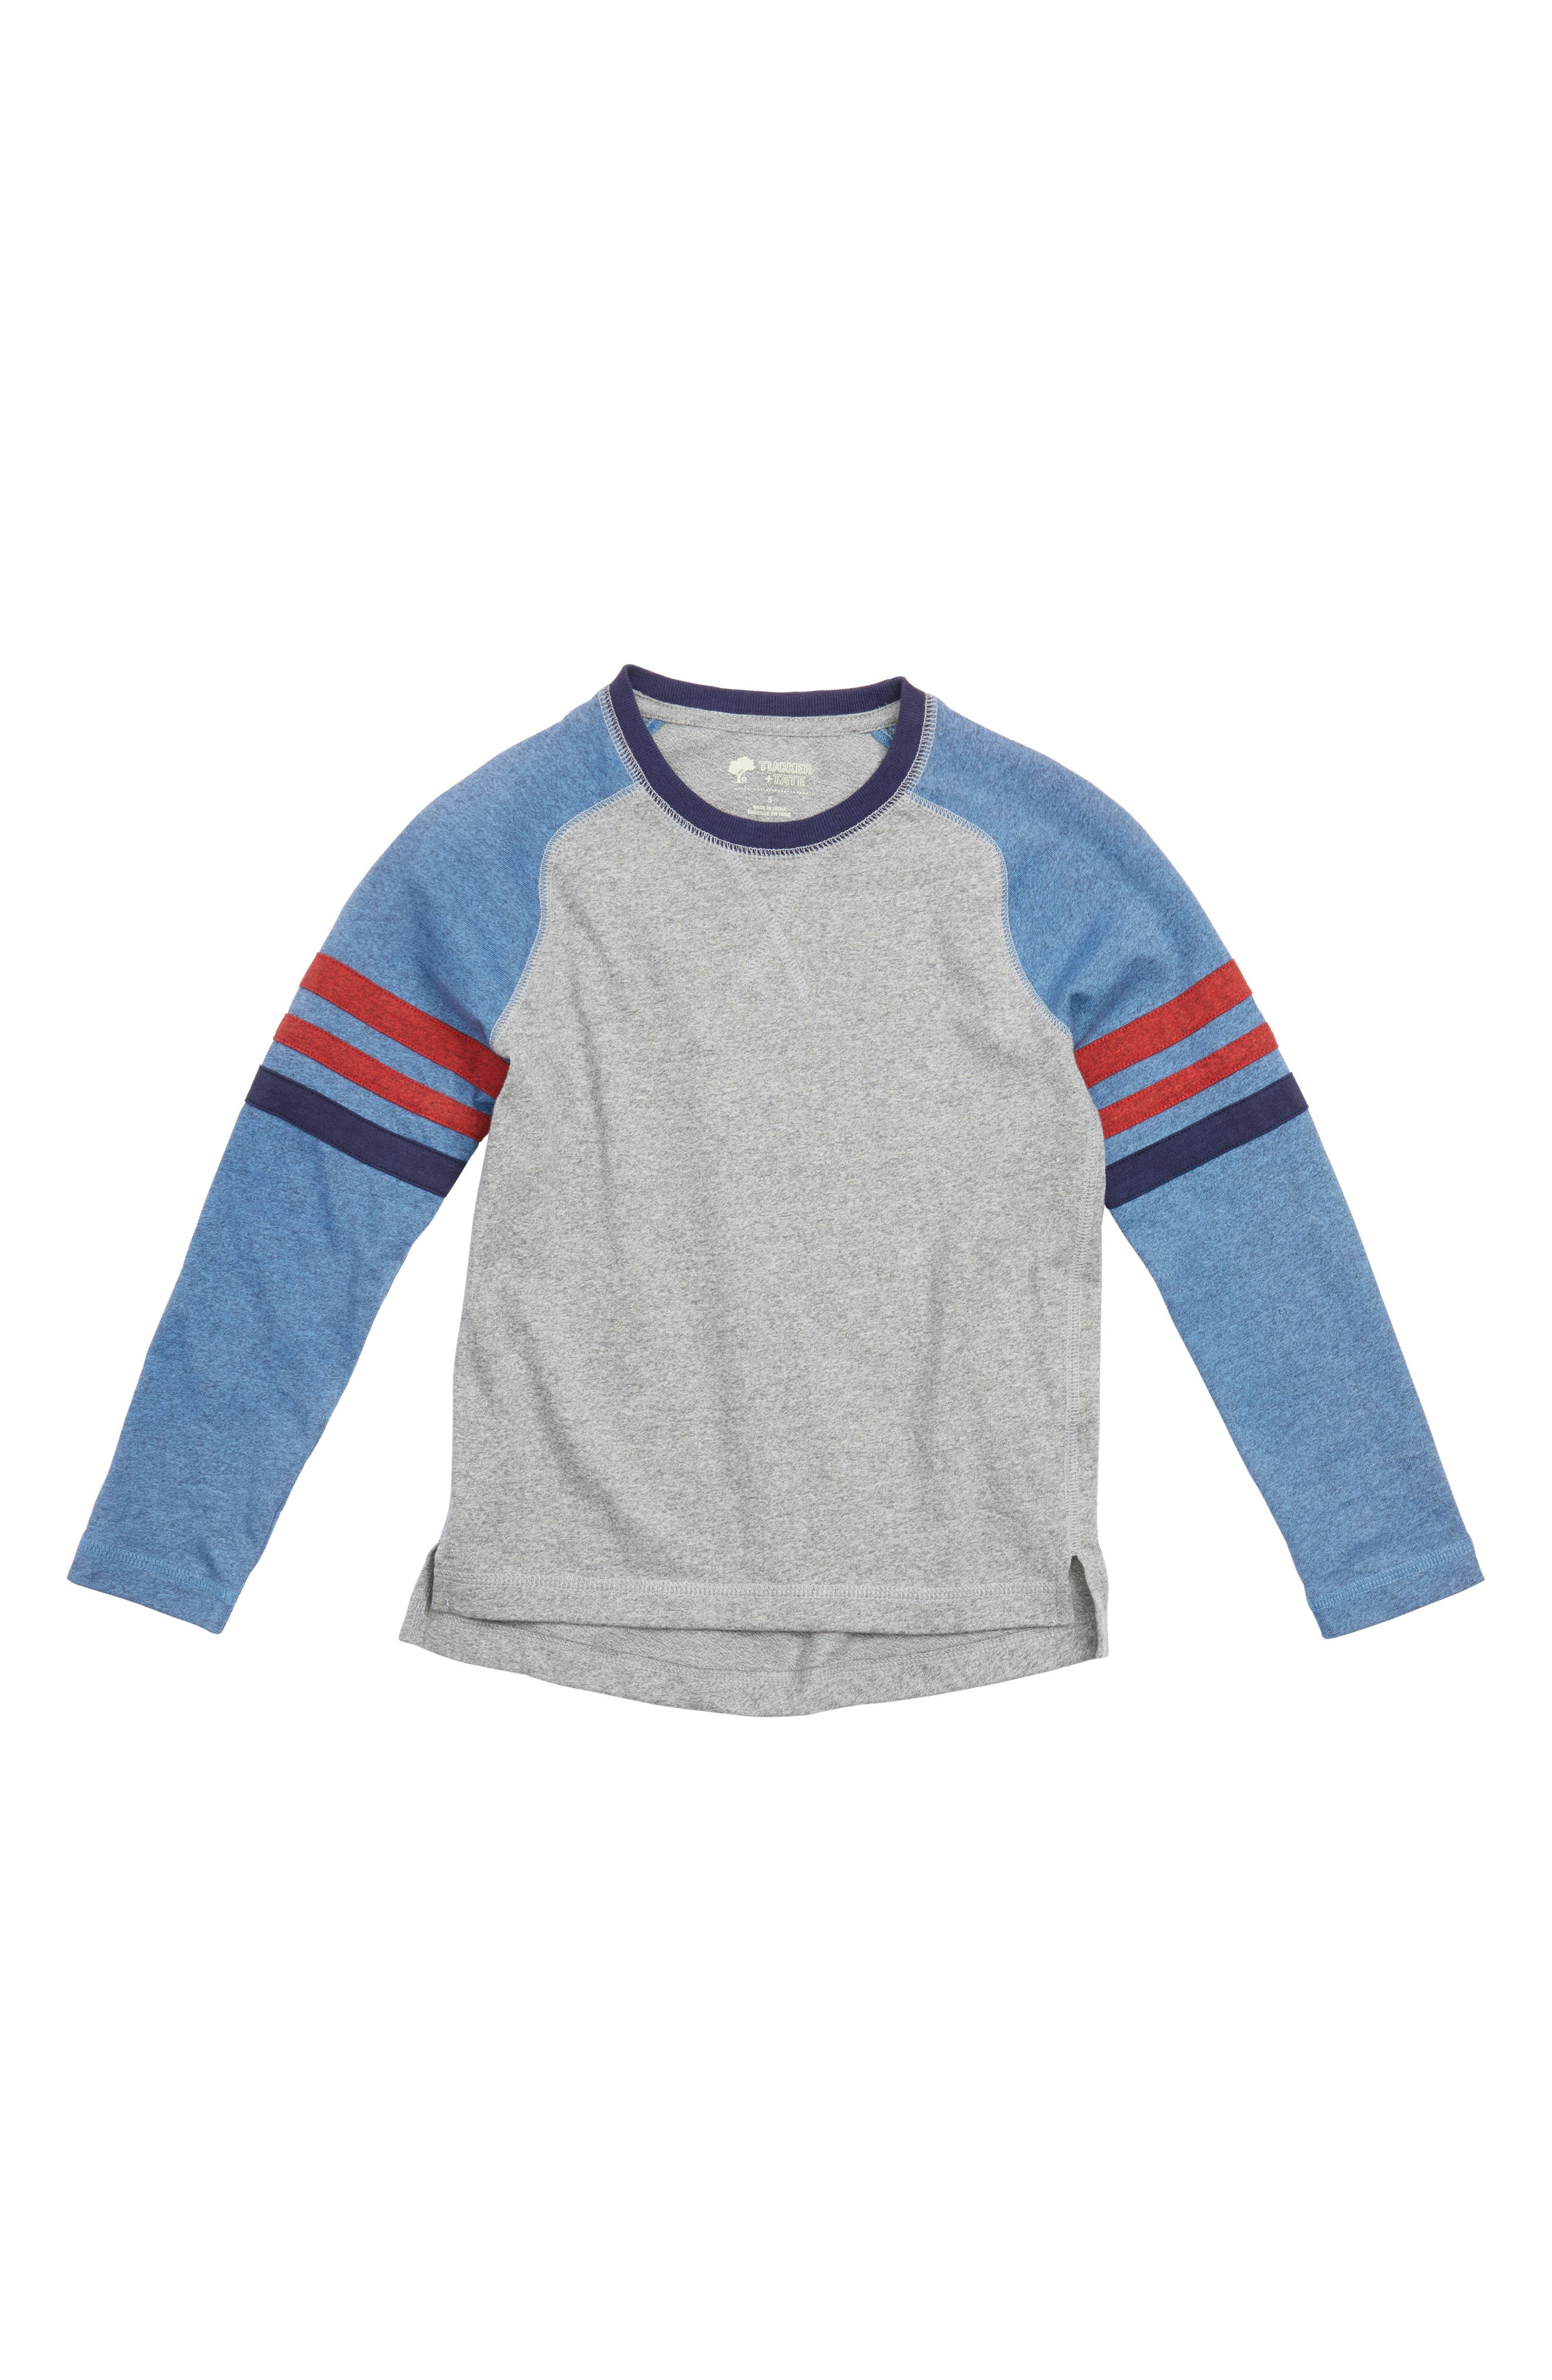 Varsity Raglan T-Shirt,                         Main,                         color, Grey Medium Heather- Blue